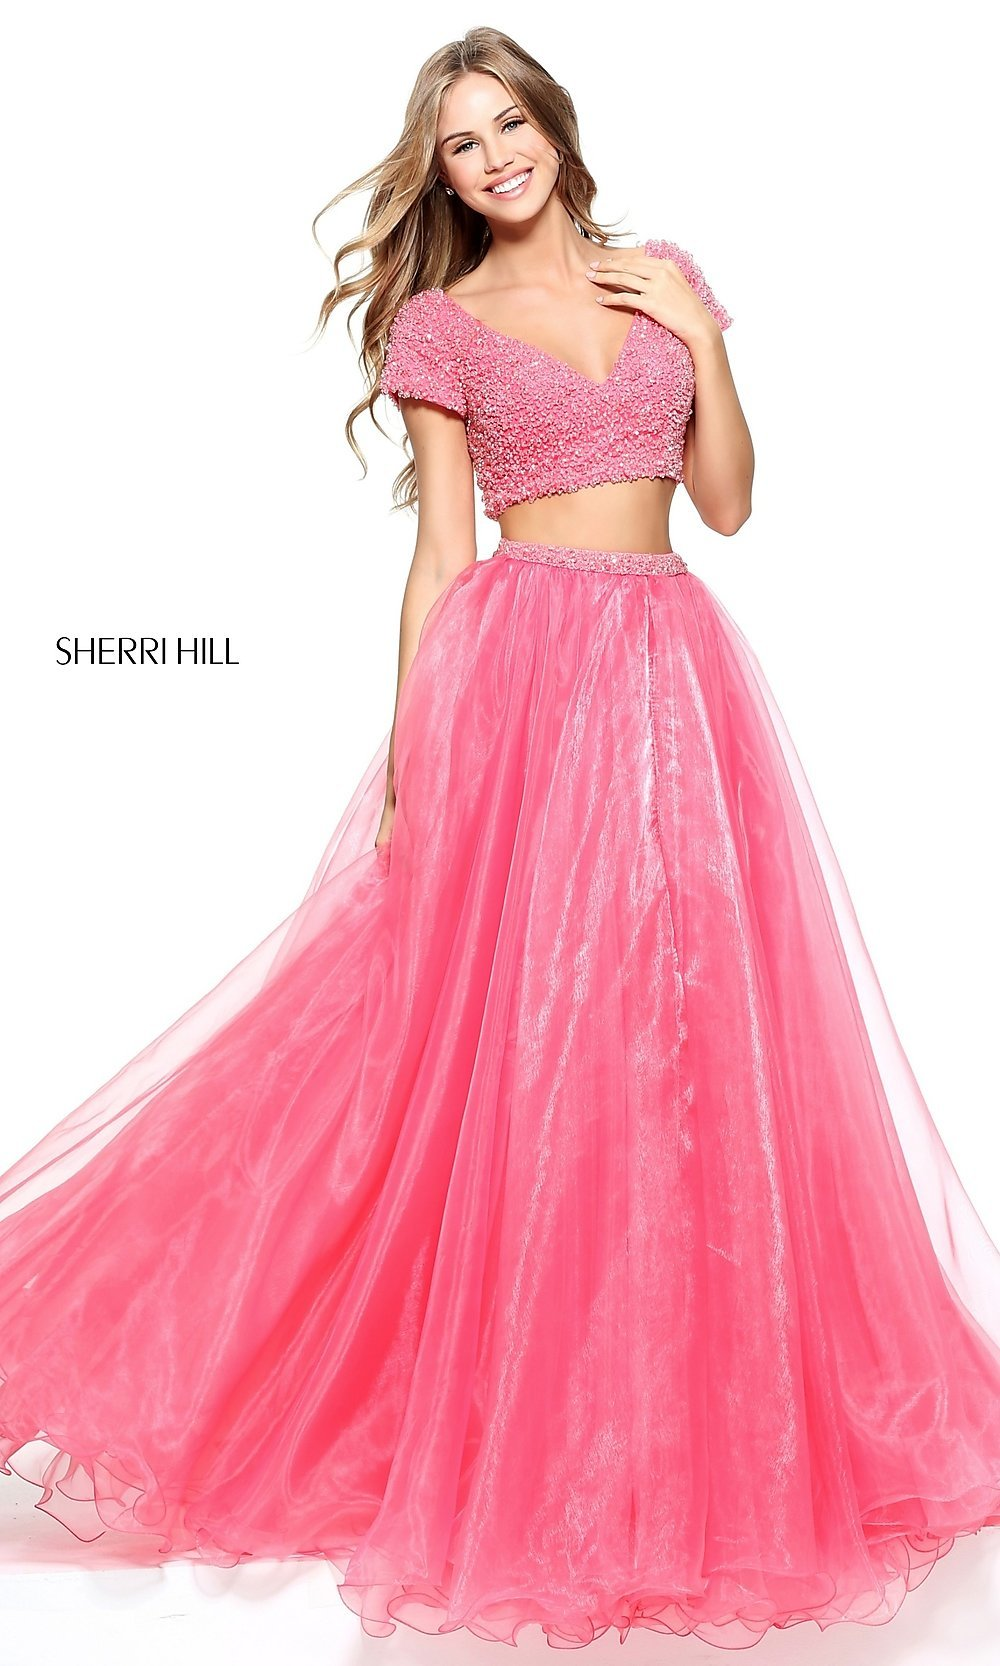 Ball Gowns for Prom, Long Formal Dresses - p2 (by 32 - popularity)